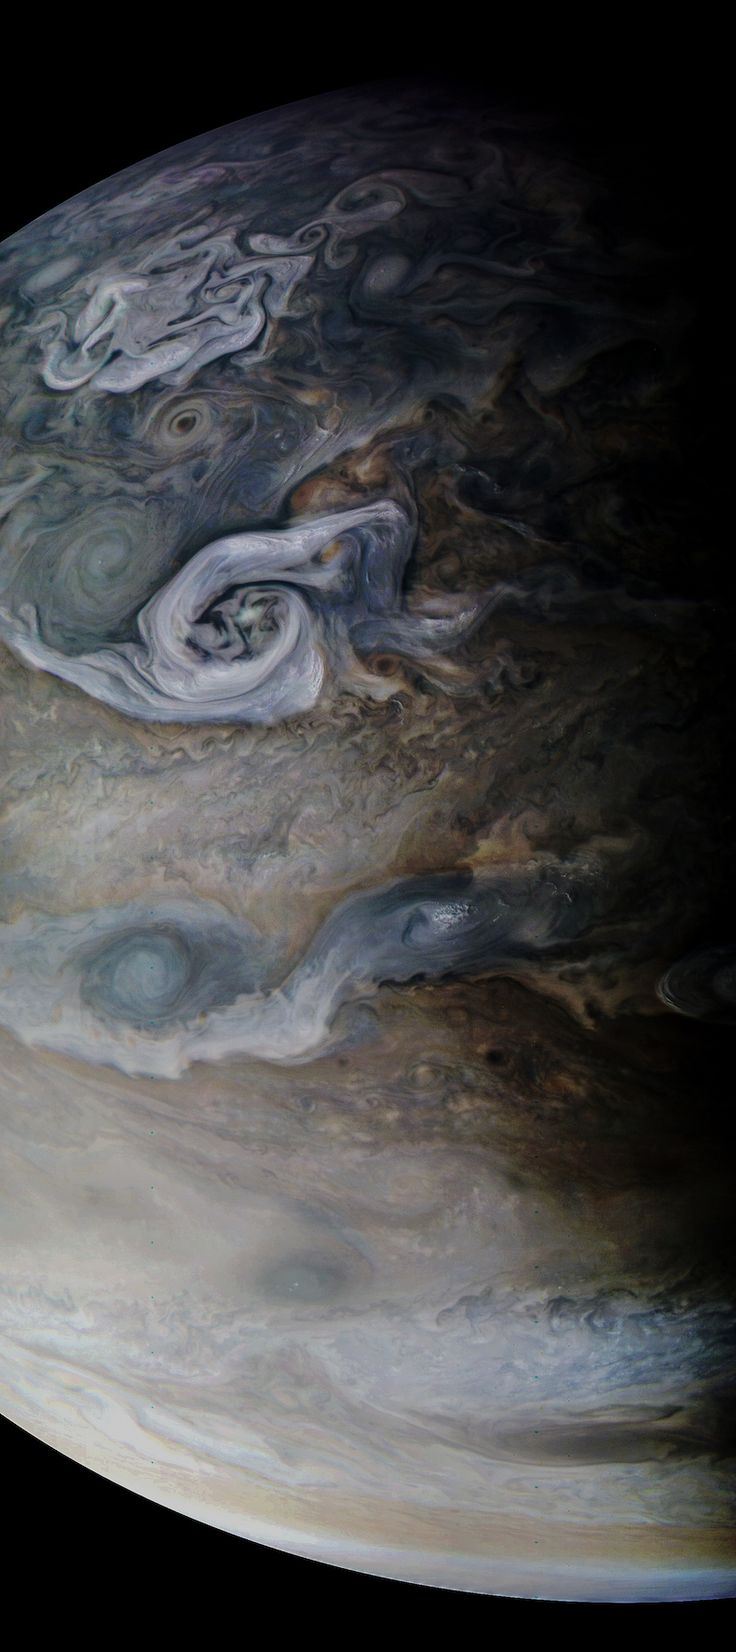 Jupiter as seen by Juno on October 24, 2017. Image via NASA/ JPL-Caltech/ MSSS/ SwRI/ Kevin M. Gill/ AmericaSpace.